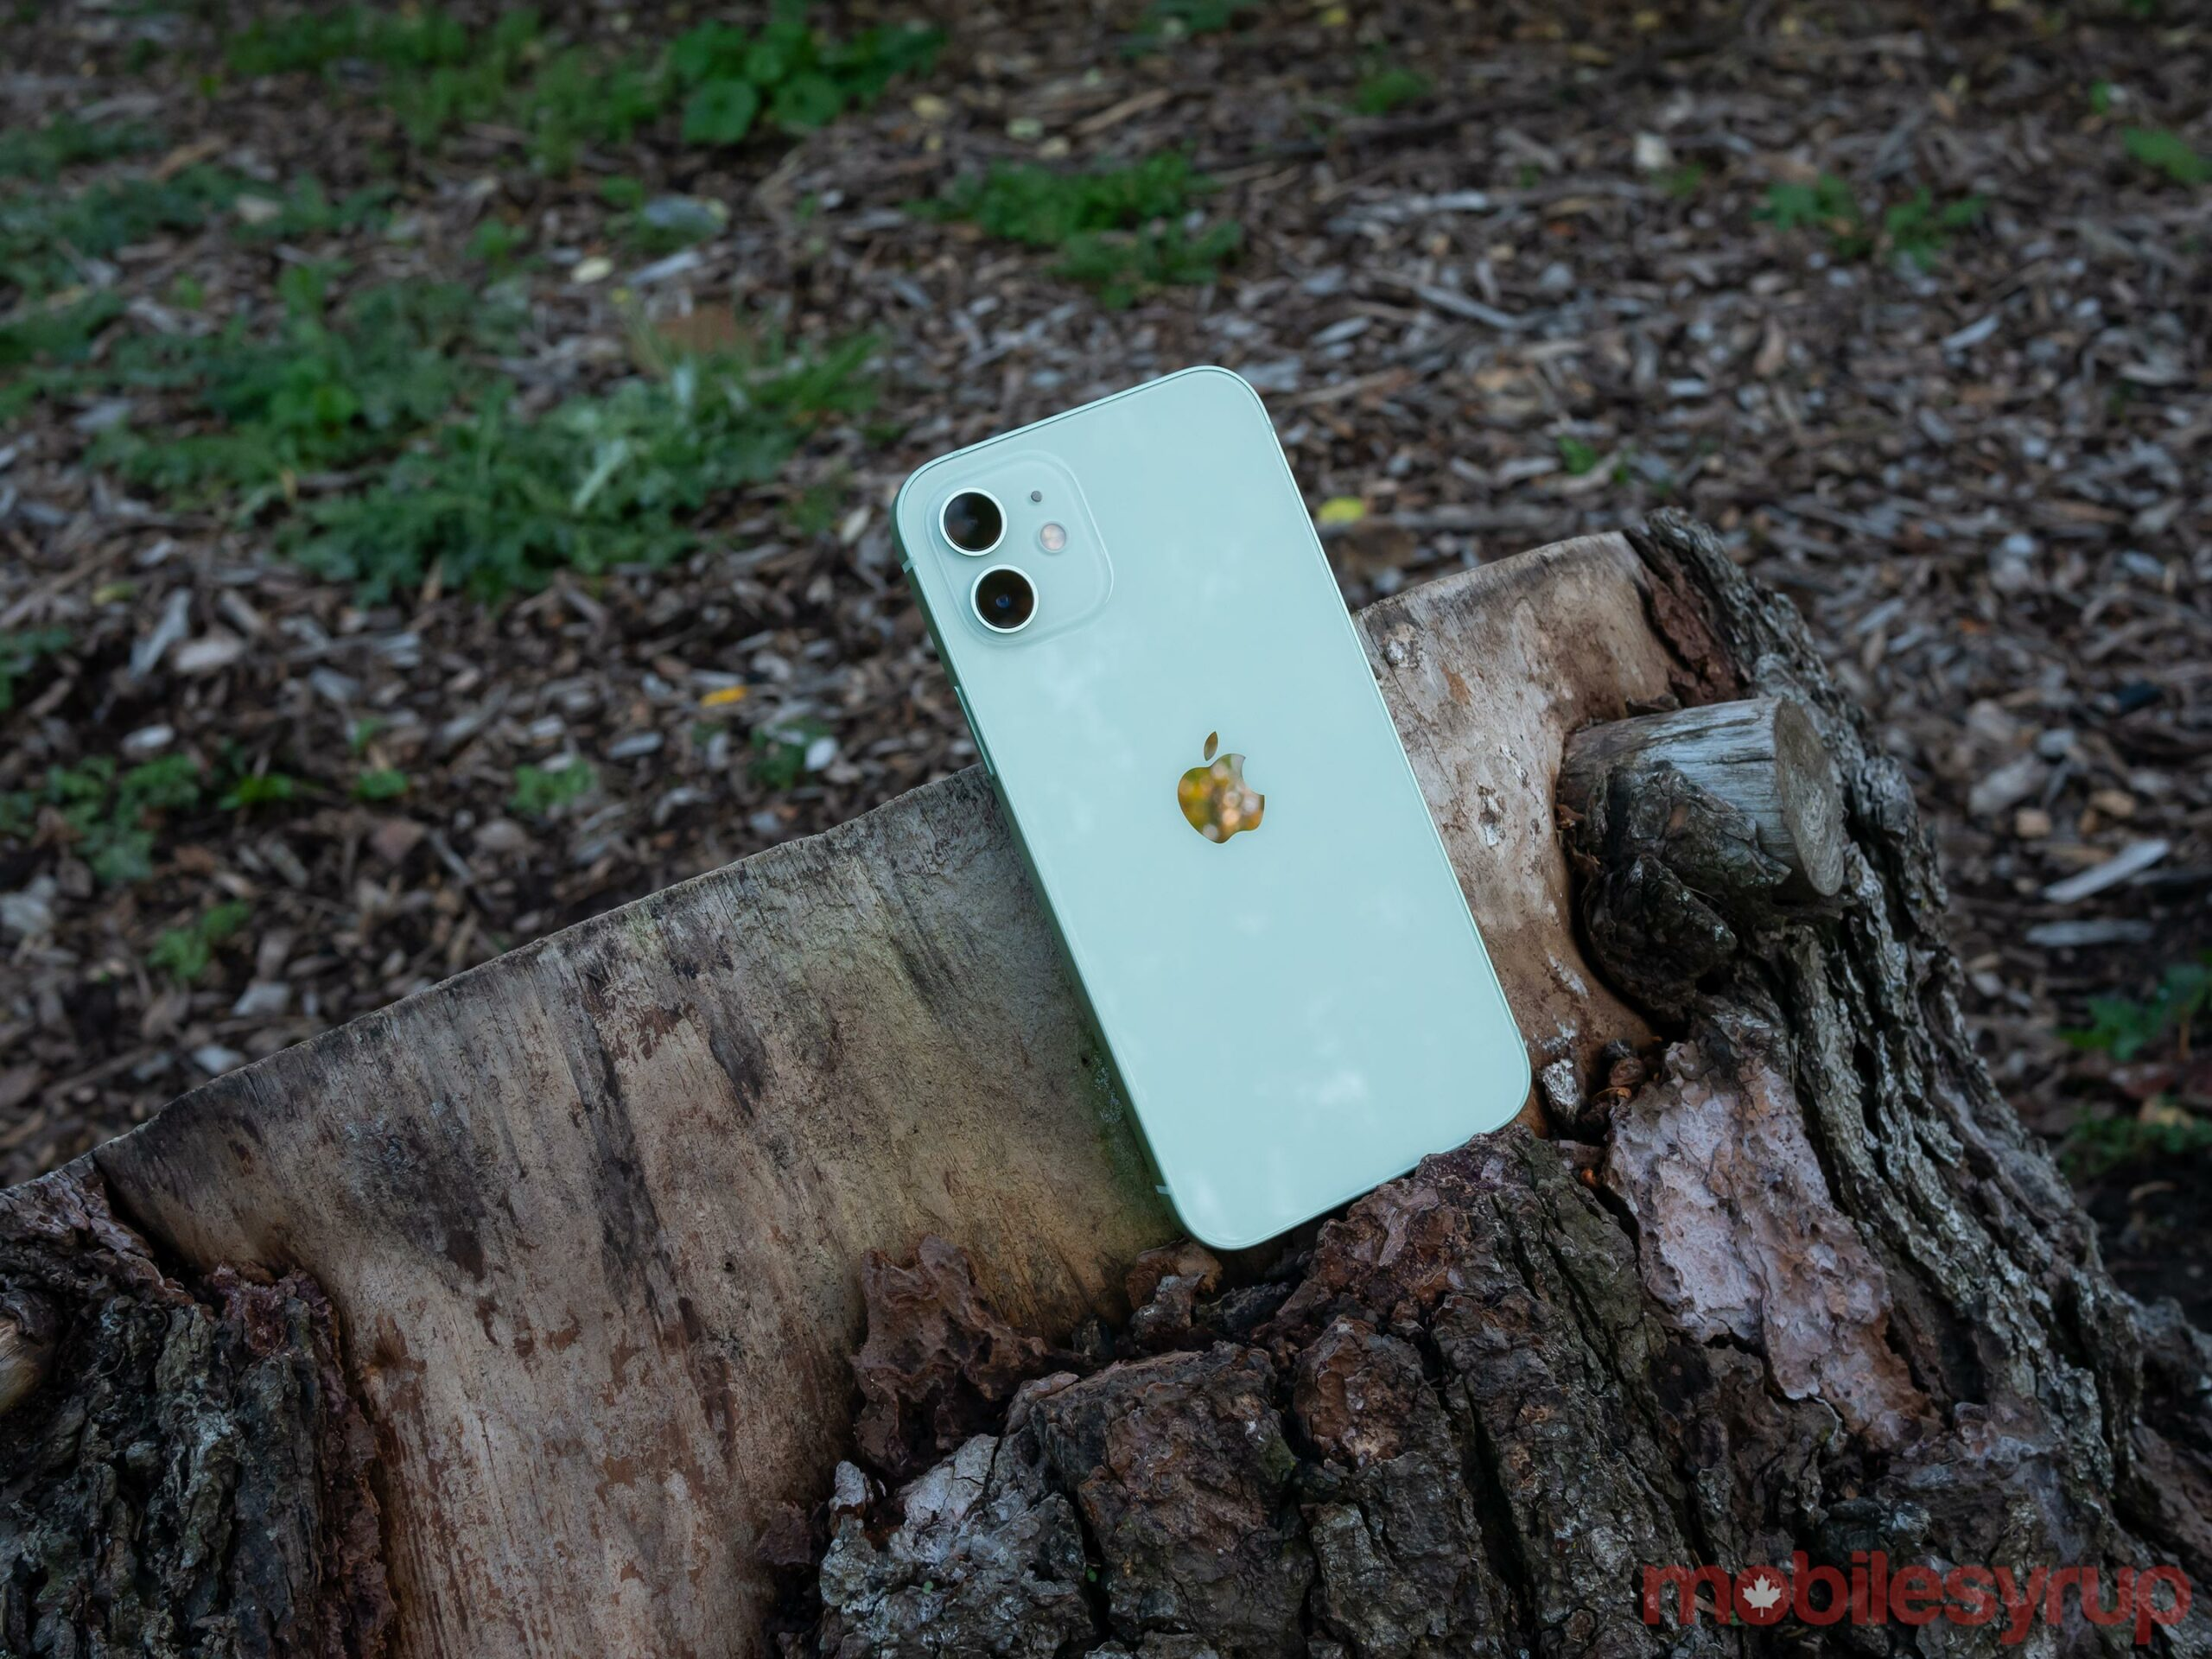 iPhone 12 on a stump